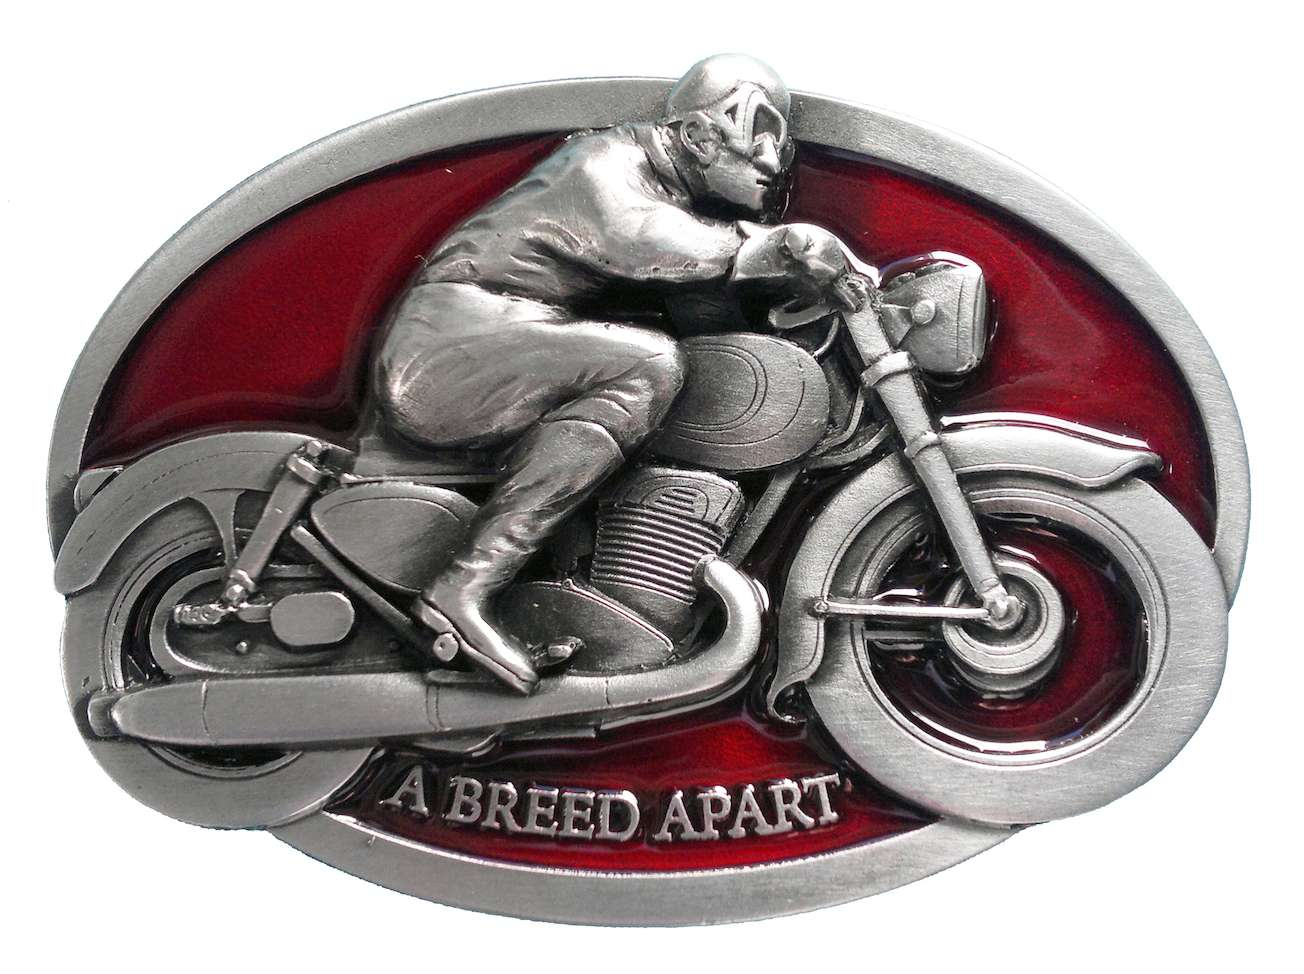 A Breed Apart Biker Belt Buckle